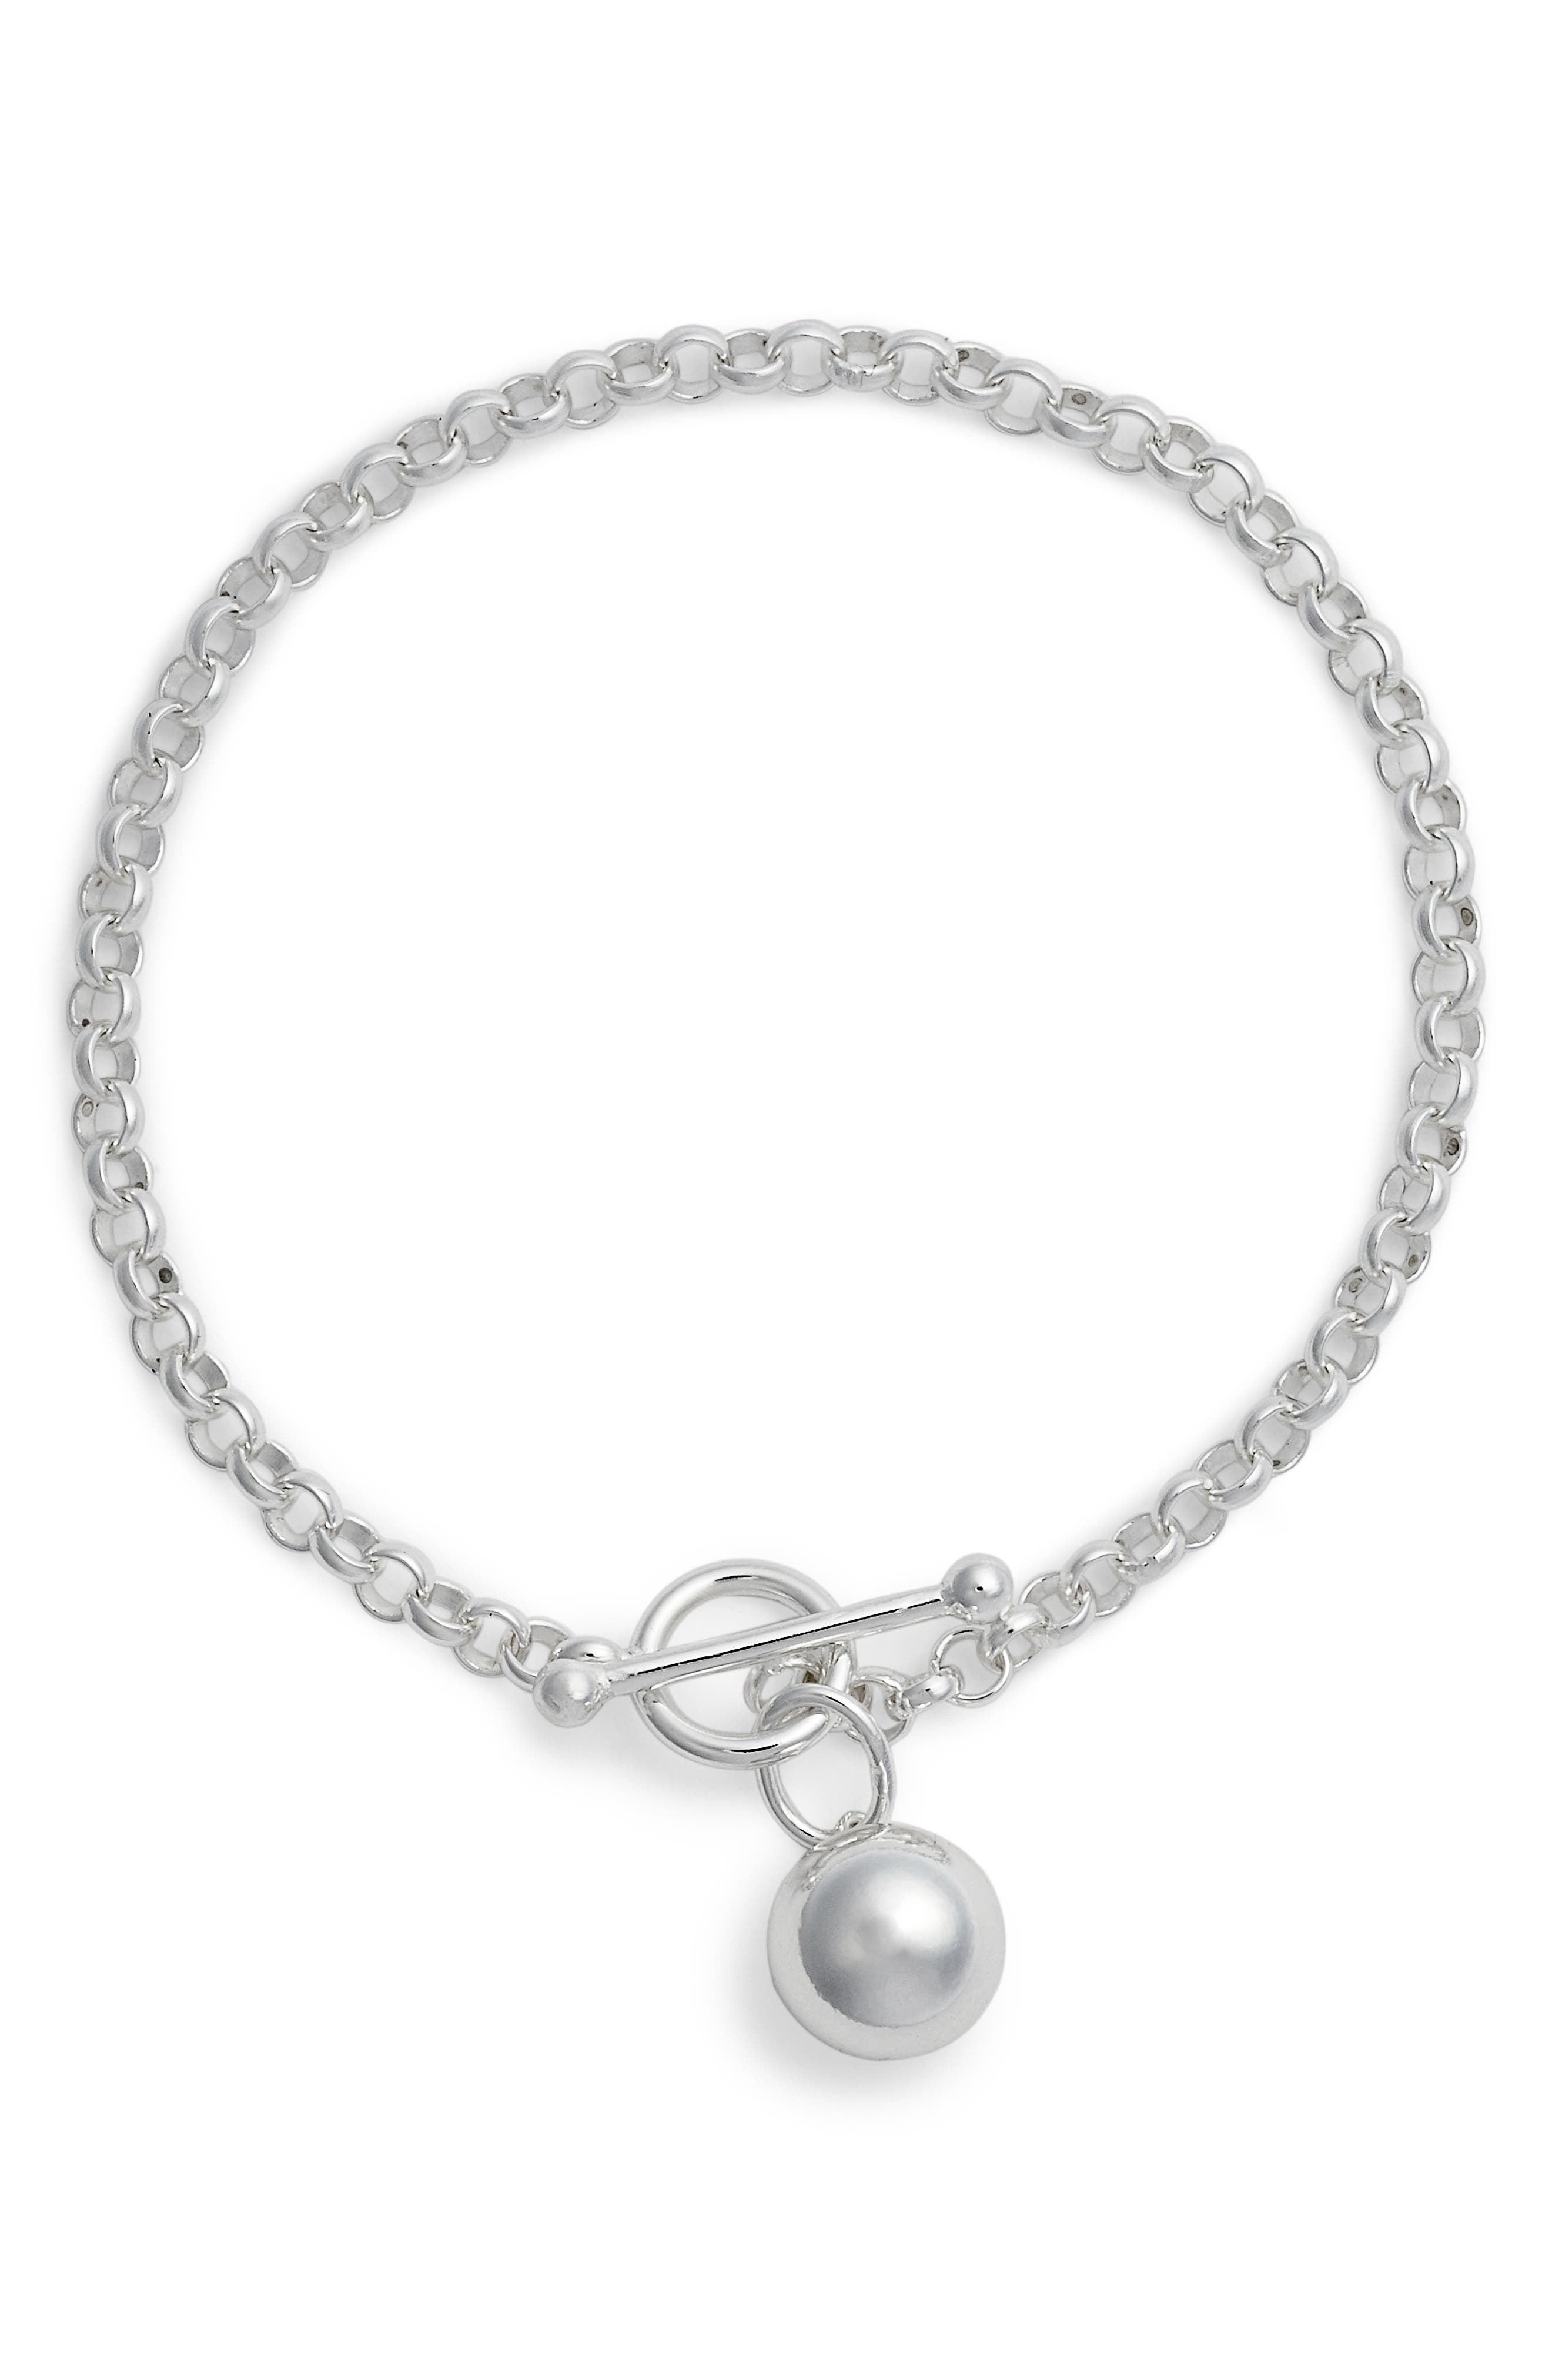 Sphere Charm Link Bracelet,                             Main thumbnail 1, color,                             040